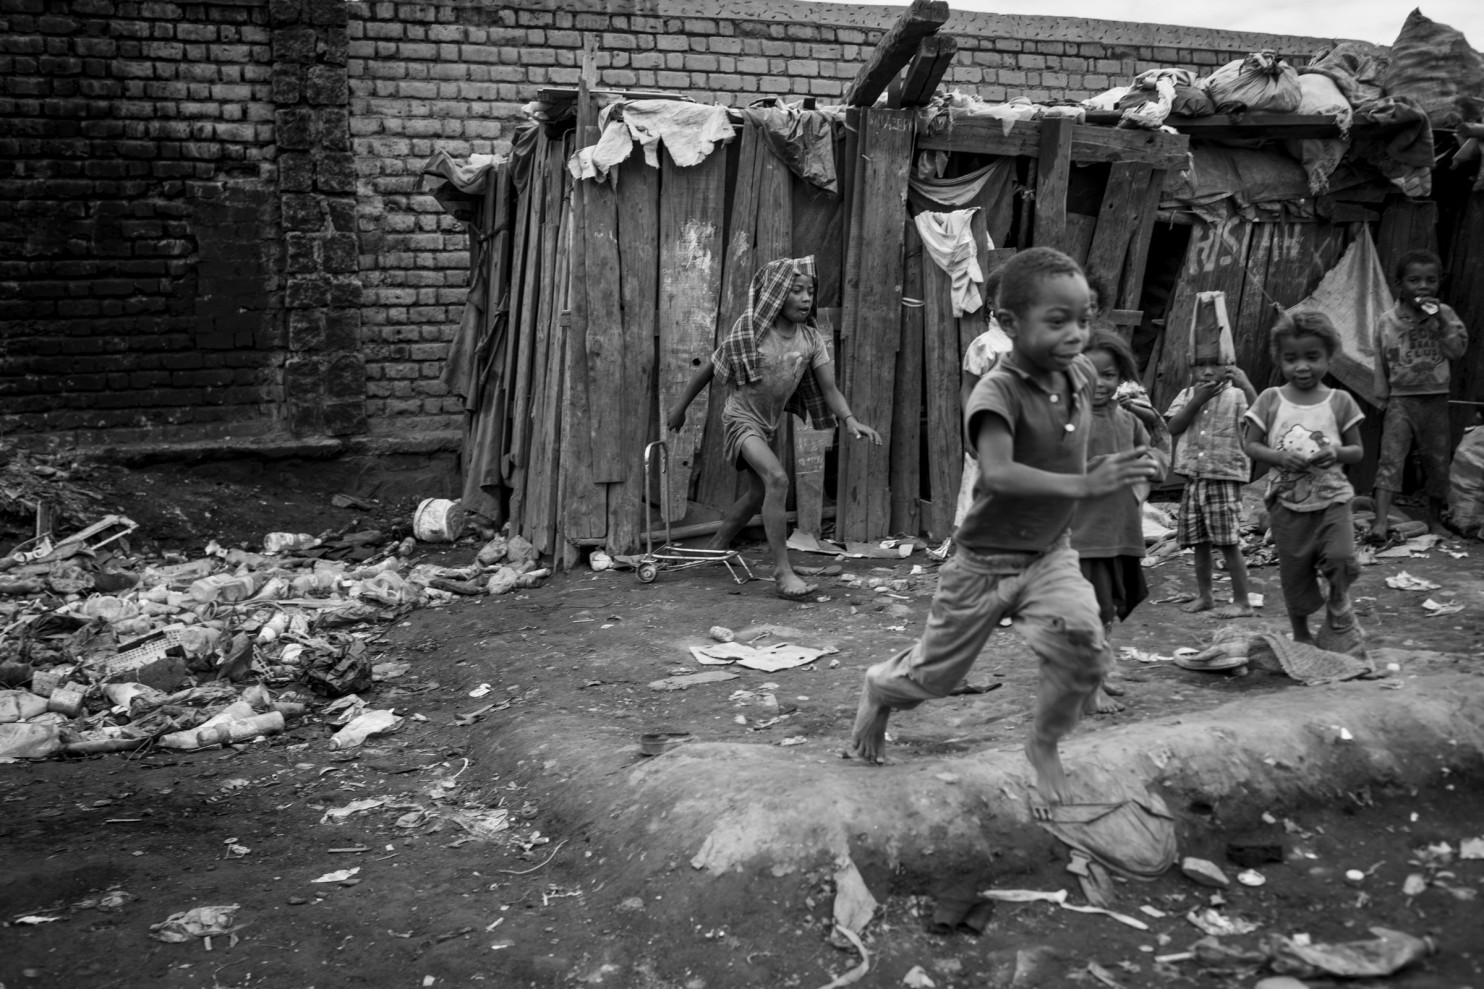 Slums in Antananarivo, the capital of Madagascar, where hygiene is very poor. The presence of rodents and fleas is rampant in the slums. (Christian Werner/Laif), Washington Post